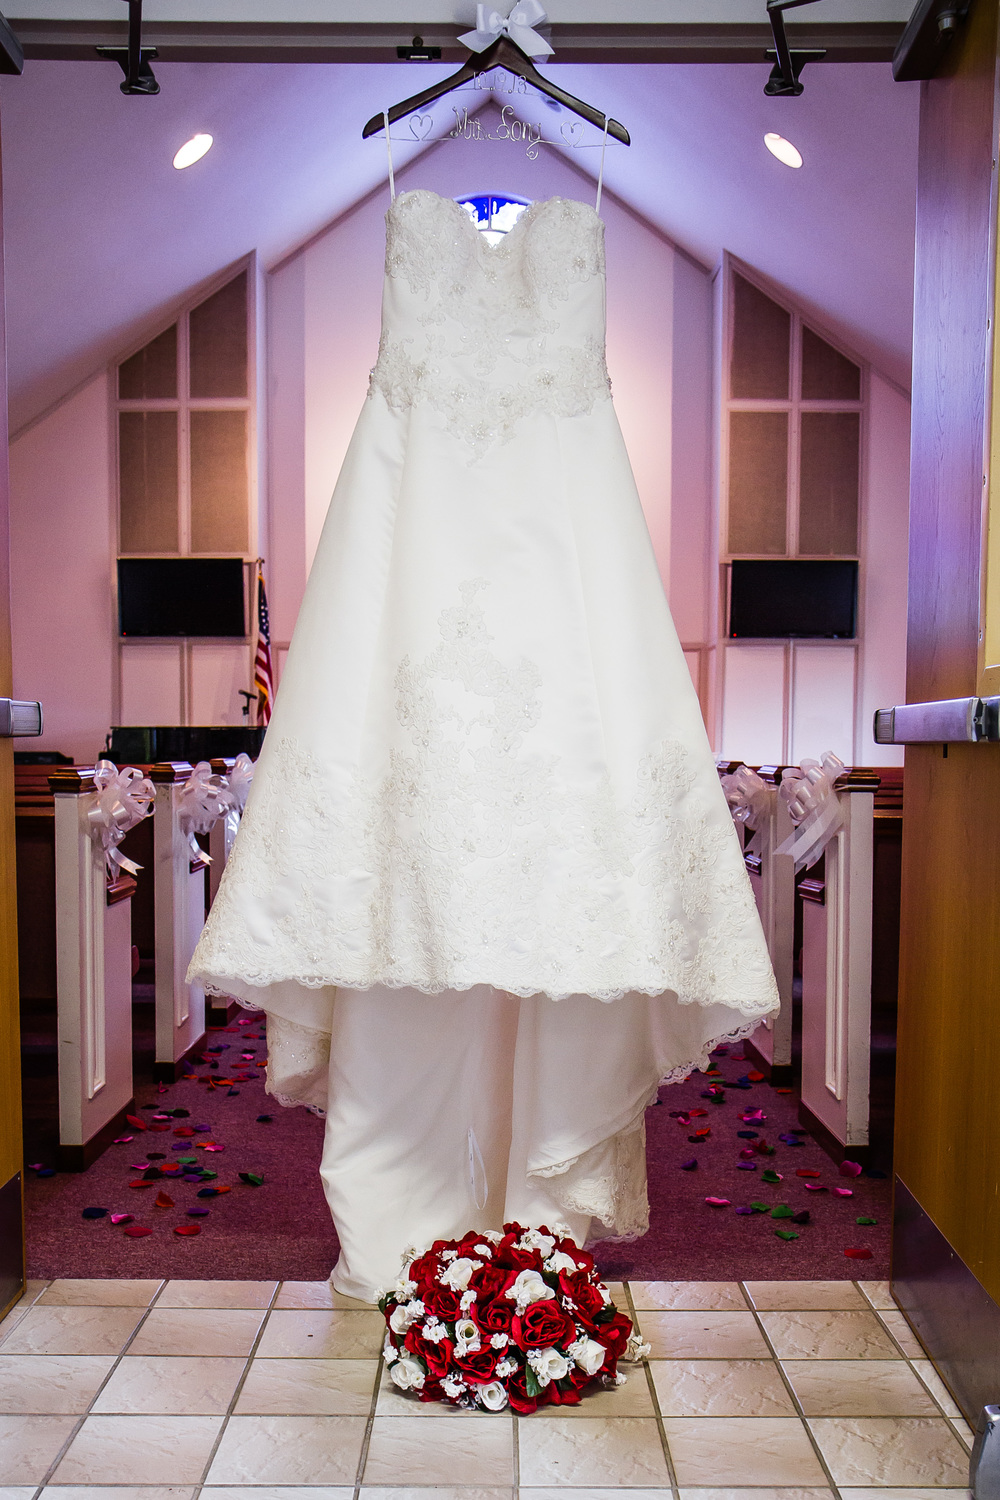 Photograph of a wedding dress and wedding bouquet in church